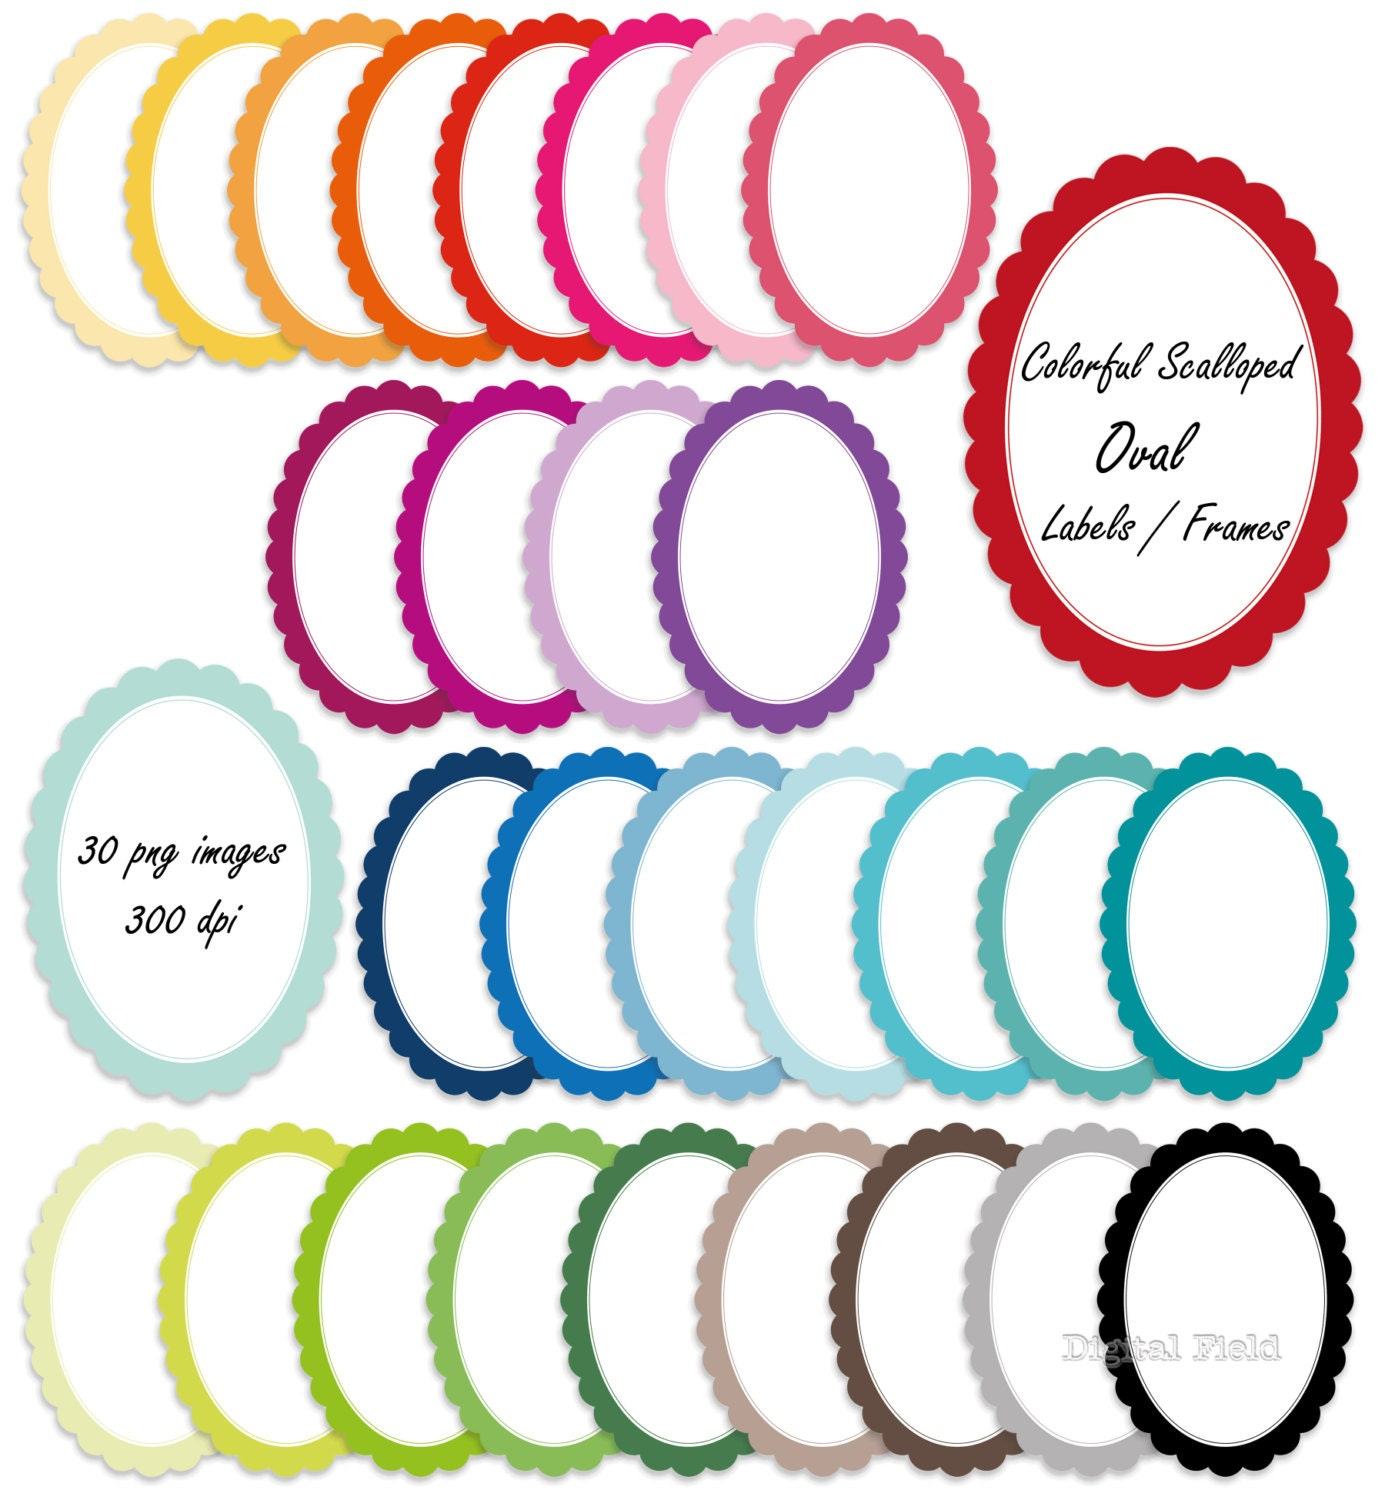 graphic regarding Printable Oval Labels known as Colourful scalloped oval labels / frames clip artwork mounted - printable electronic clipart - fast down load